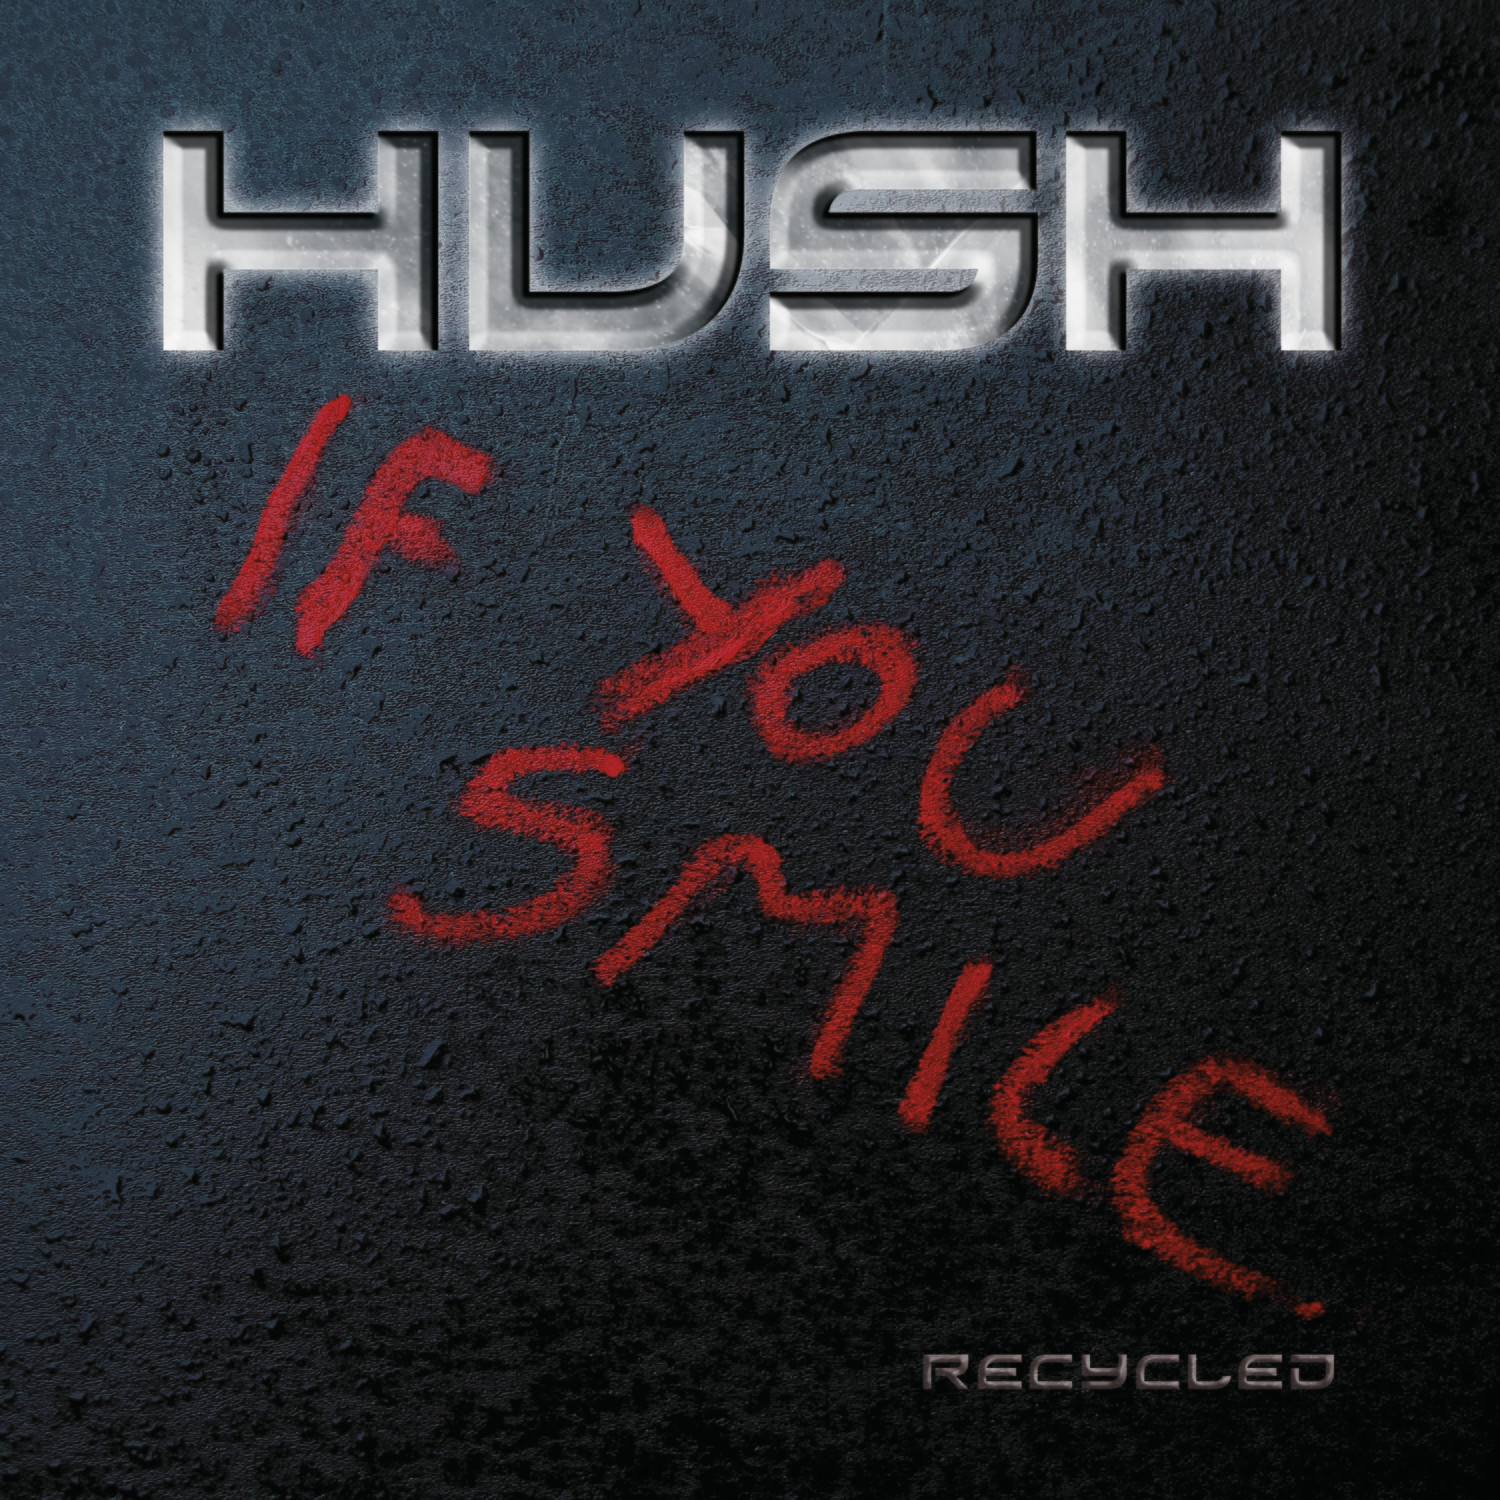 Hush If you smile Recycled